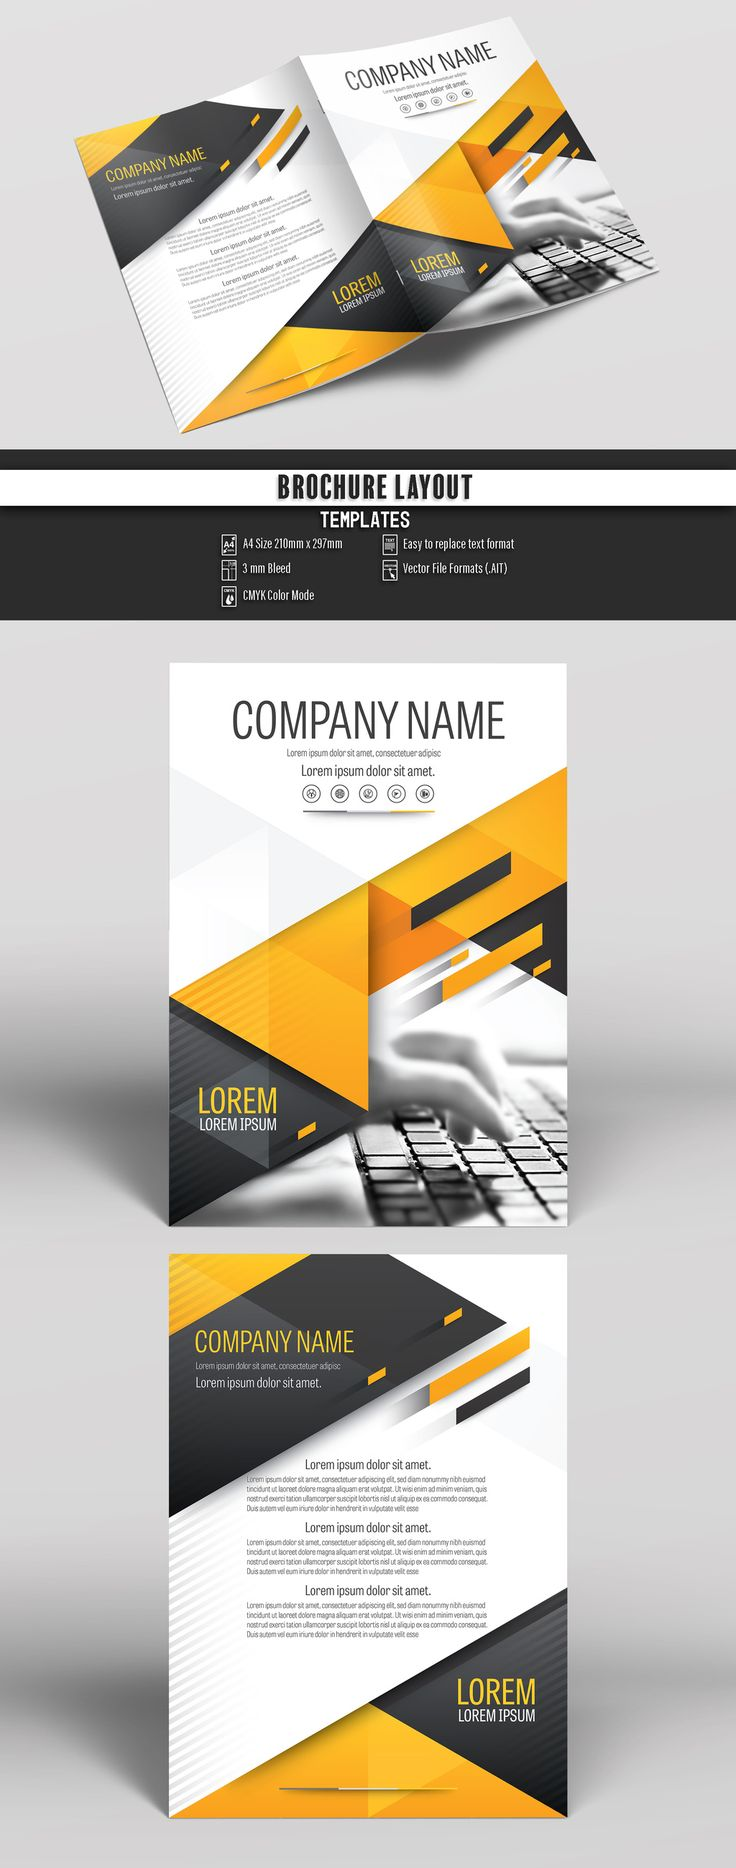 Brochure Cover Layout with Gray and Orange Accents 25. Buy this stock template and explore similar templates at Adobe Stock  #Brochure #Business #Proposal #Booklet #Flyer #Template #Design #Layout #Cover #Book #Booklet #A4 #Annual #Report  Brochure template   Brochure design template   Flyers   Template   Brochures   Flyer Background   Background design   Business Proposal   Proposal Design   Booklet   Professional   Professional - Proposal - Brochure - Template